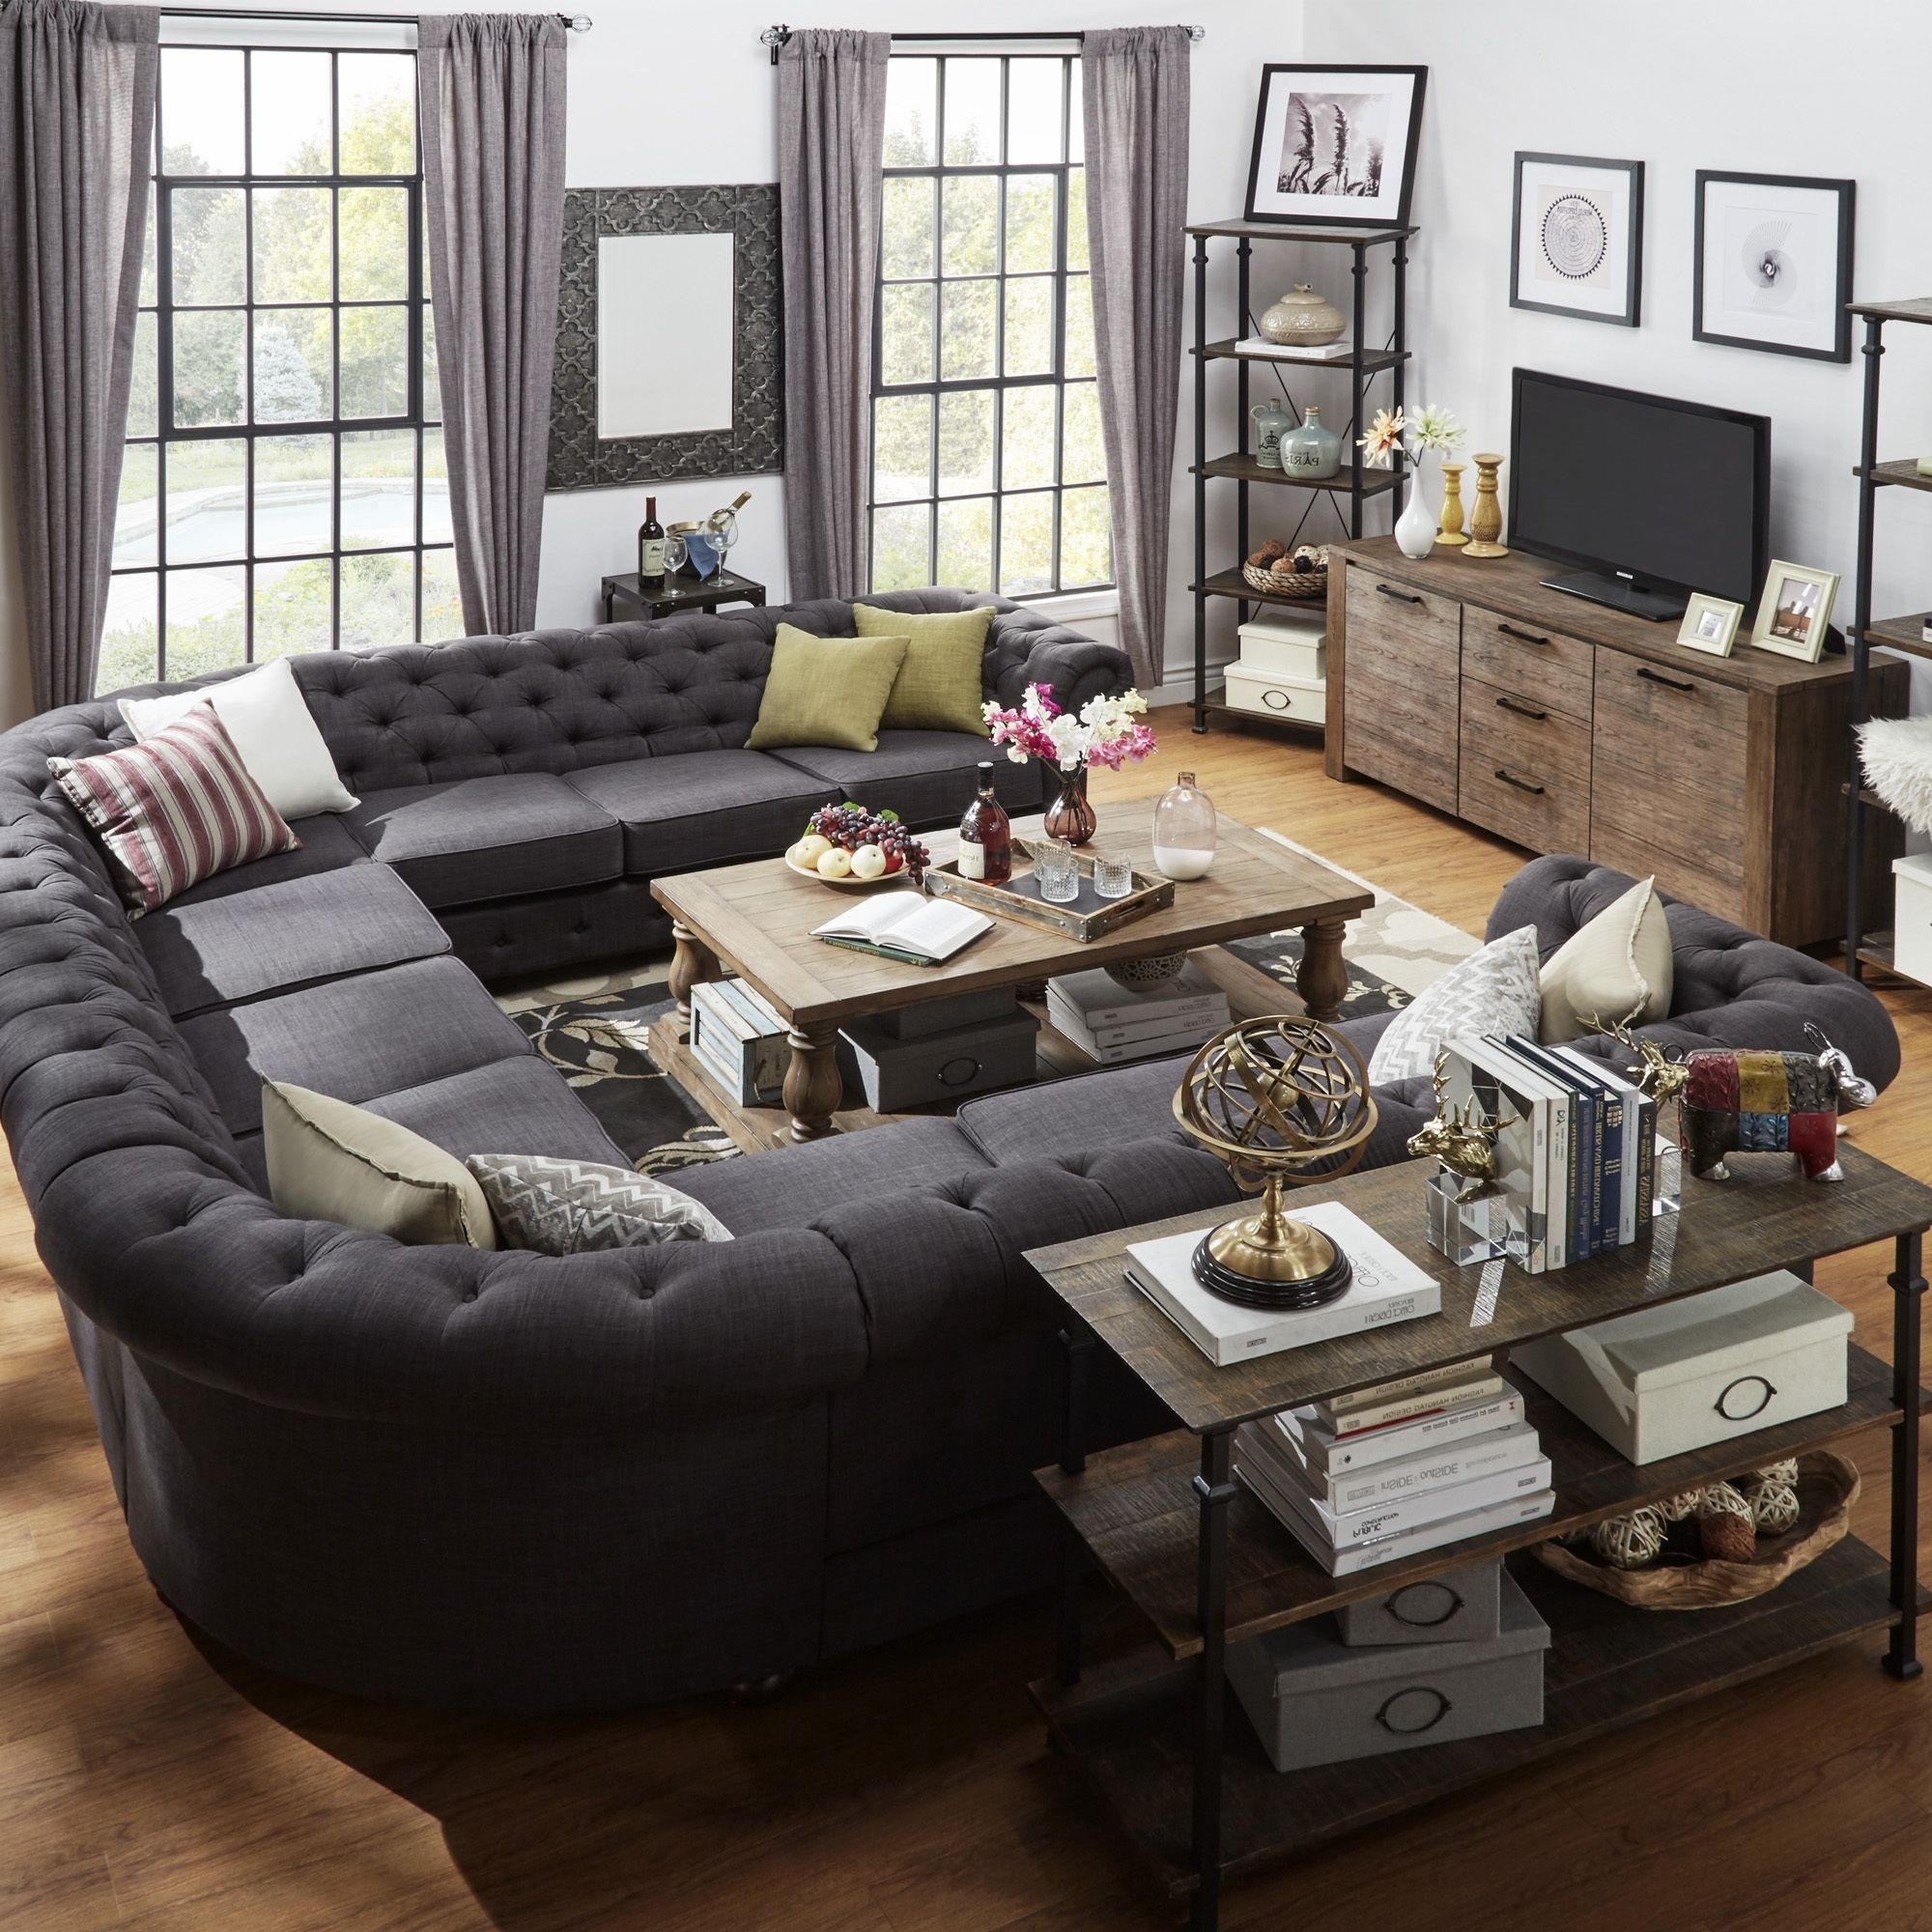 Most Recent Deep U Shaped Sectionals For Signal Hills Knightsbridge Tufted Scroll Arm Chesterfield 11 Seat (View 9 of 20)